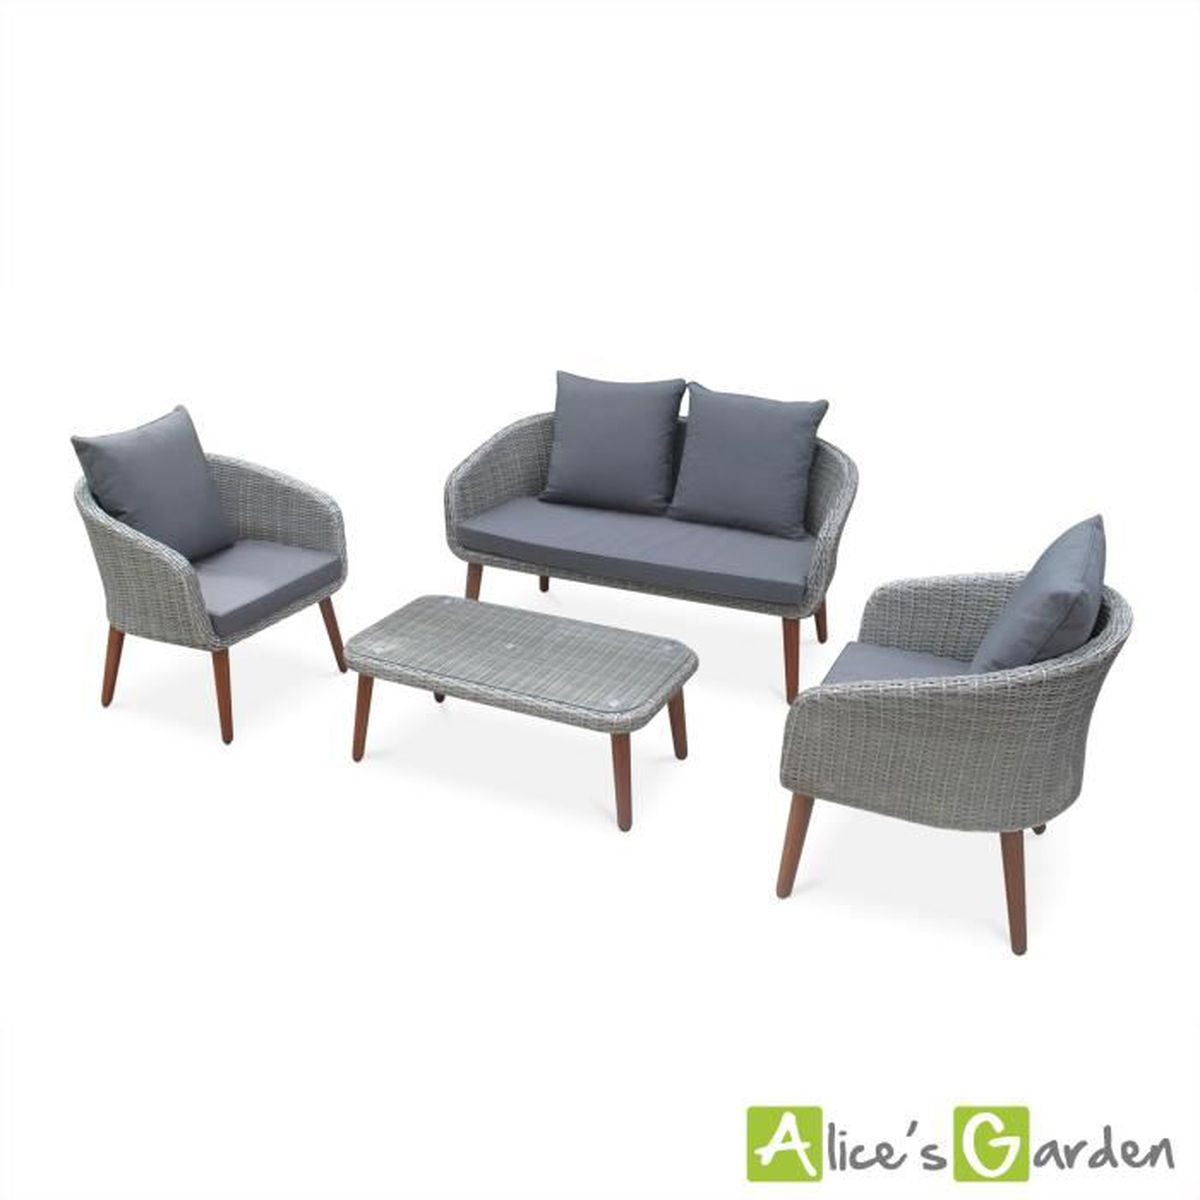 salon de jardin grenada en bois coussins gris clair 4 places assises 4 l ments achat. Black Bedroom Furniture Sets. Home Design Ideas